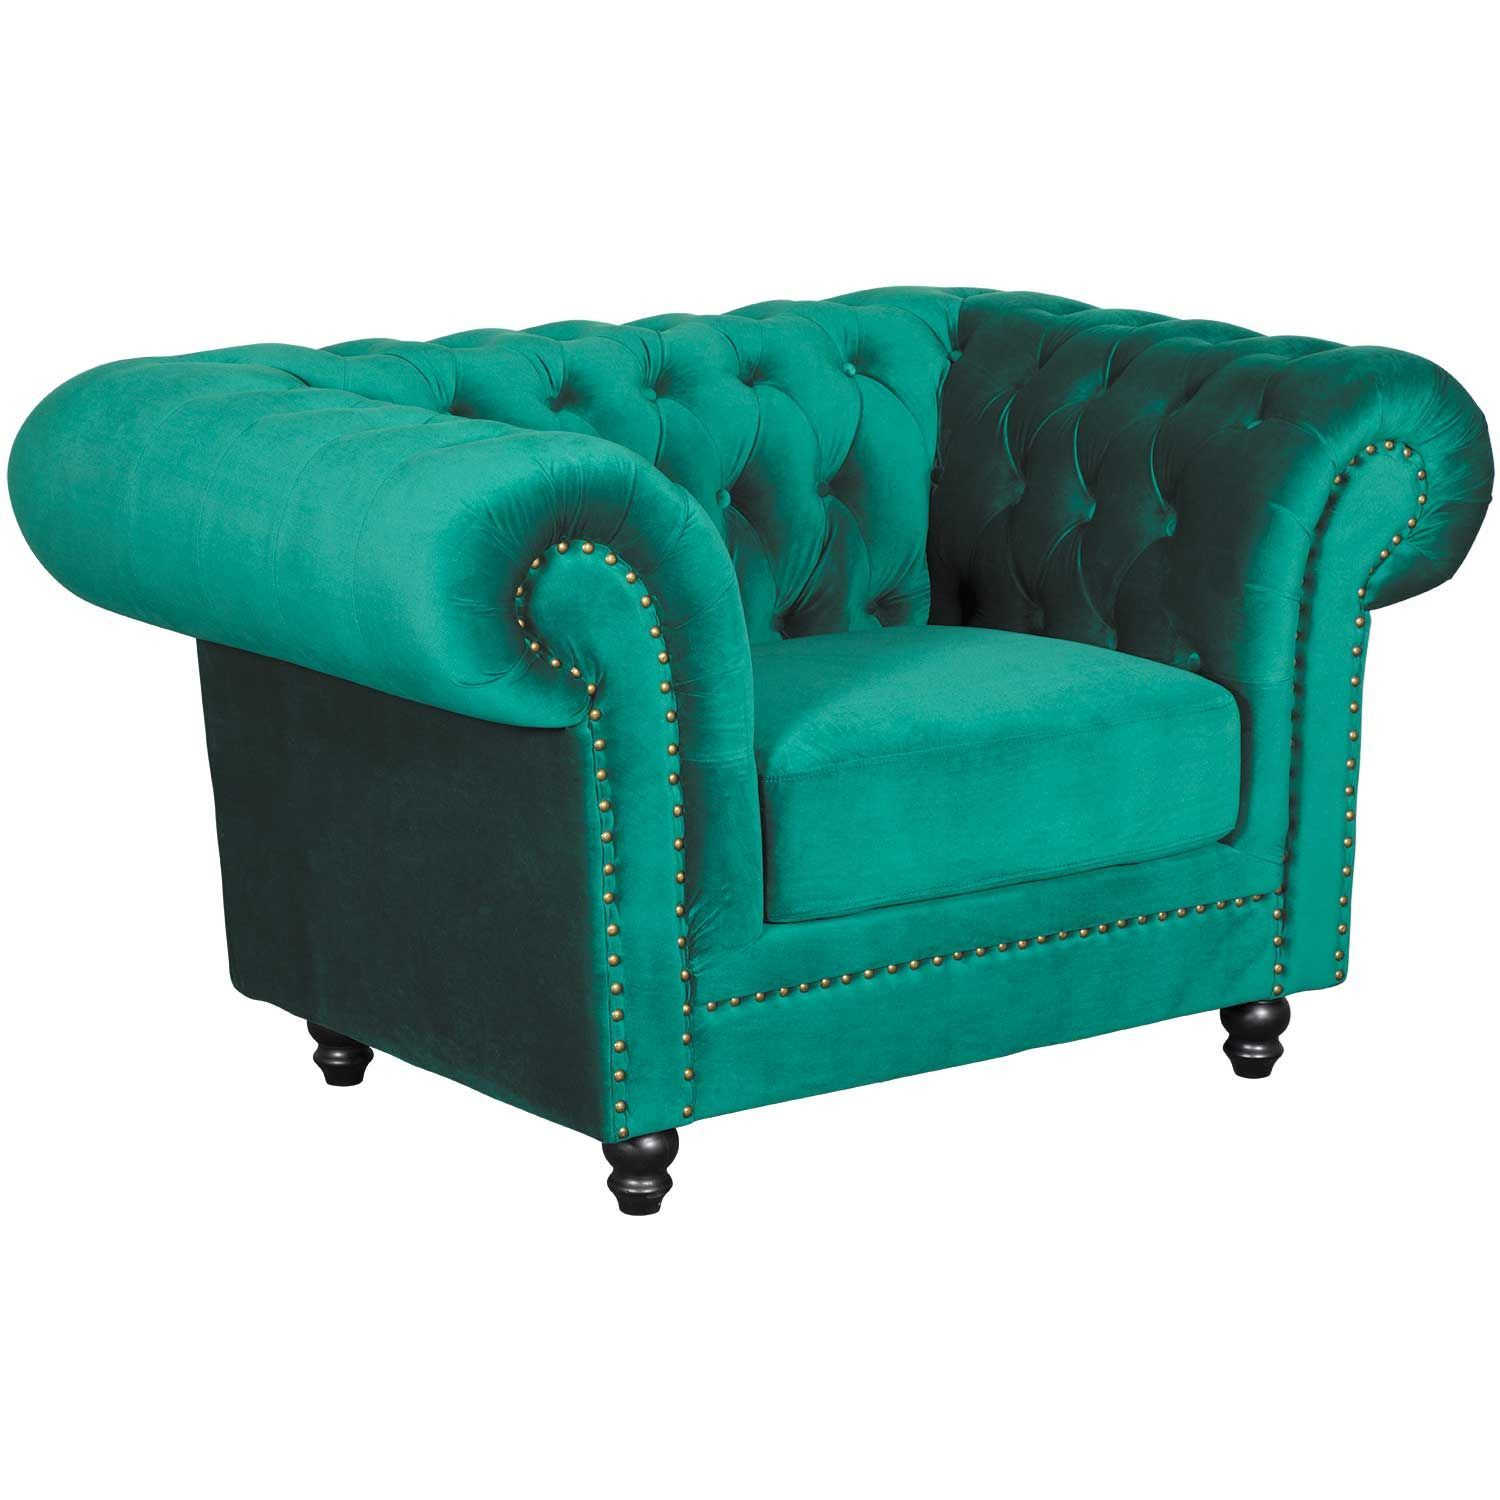 Callie Tufted Emerald Chair | My225 S1/cc 42 | Cambridge Home | Afw With Callie Sofa Chairs (Image 13 of 20)